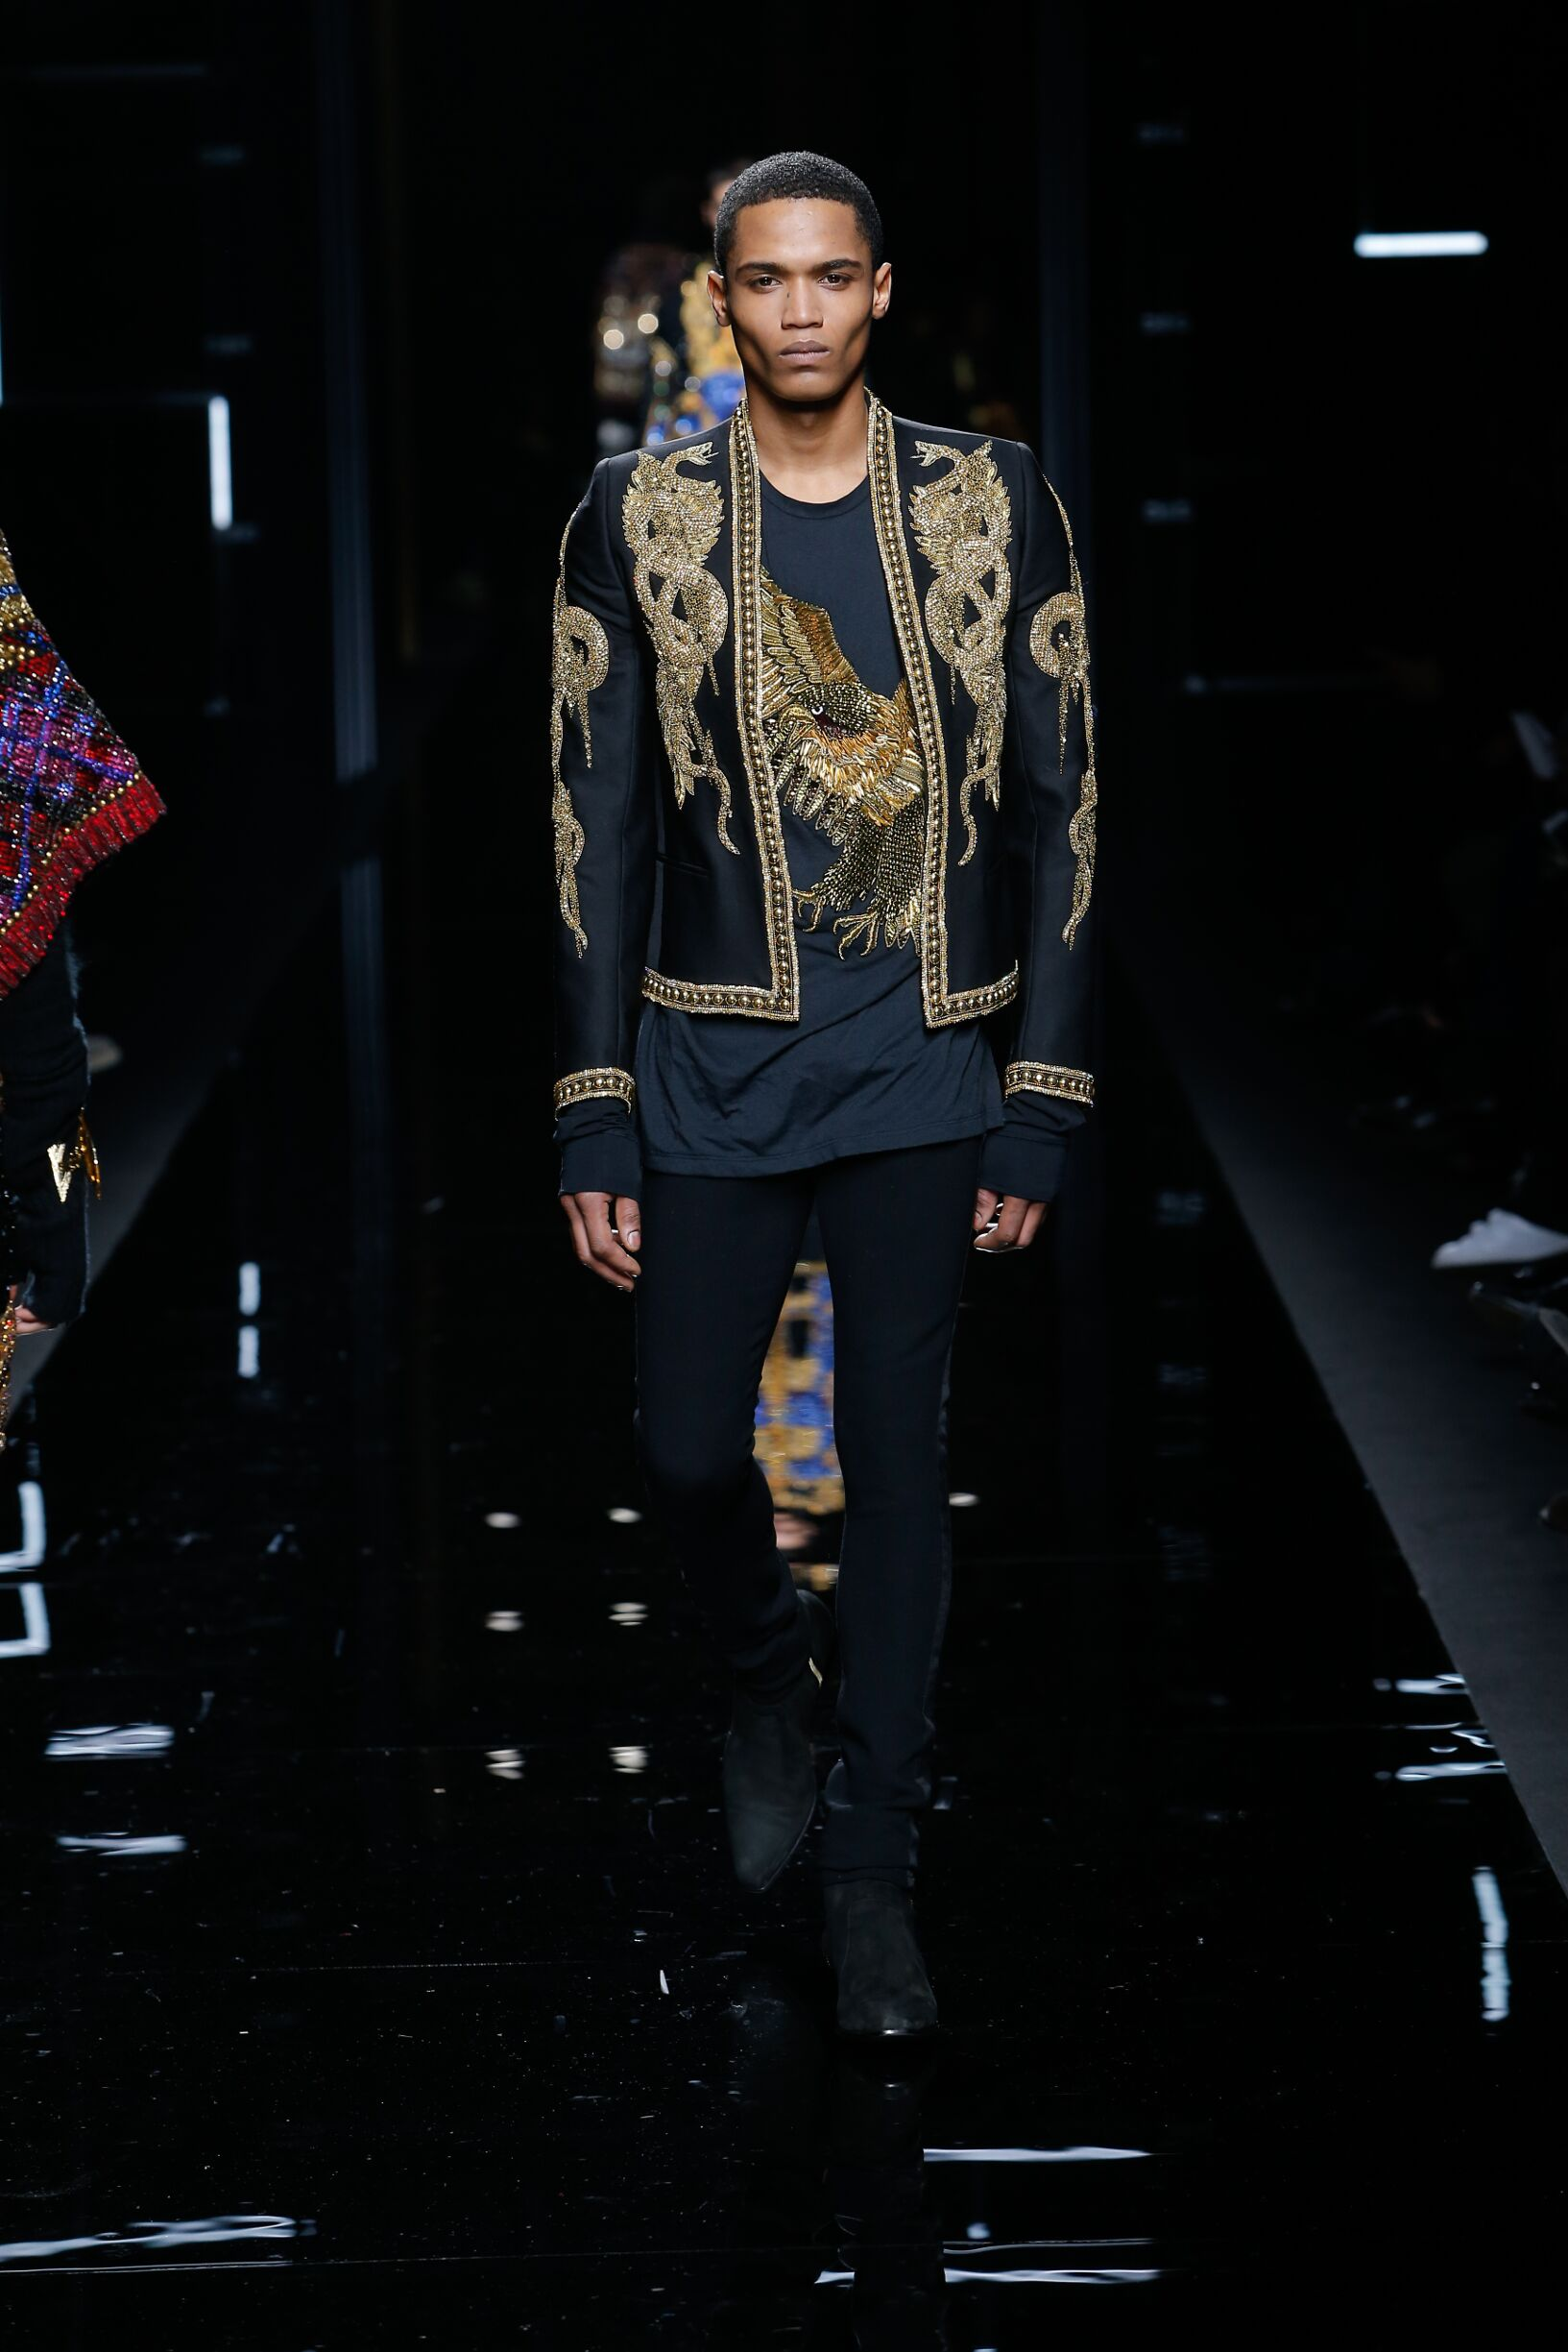 2017 Catwalk Balmain Man Fashion Show Winter Fashion Week